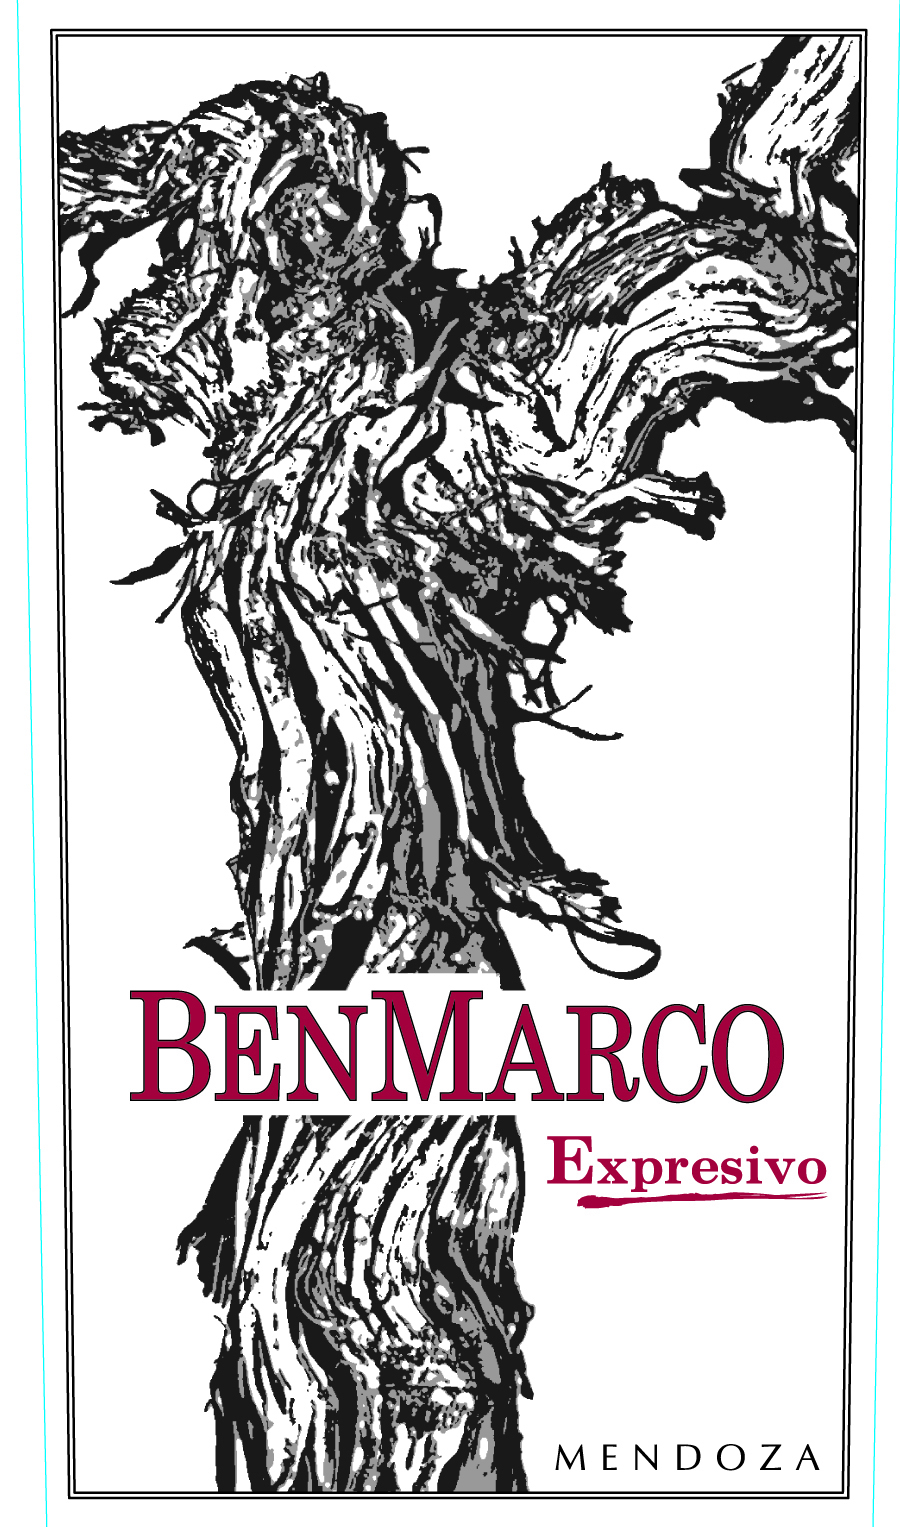 2014 Benmarco Expresivo Proprietary Red Blend